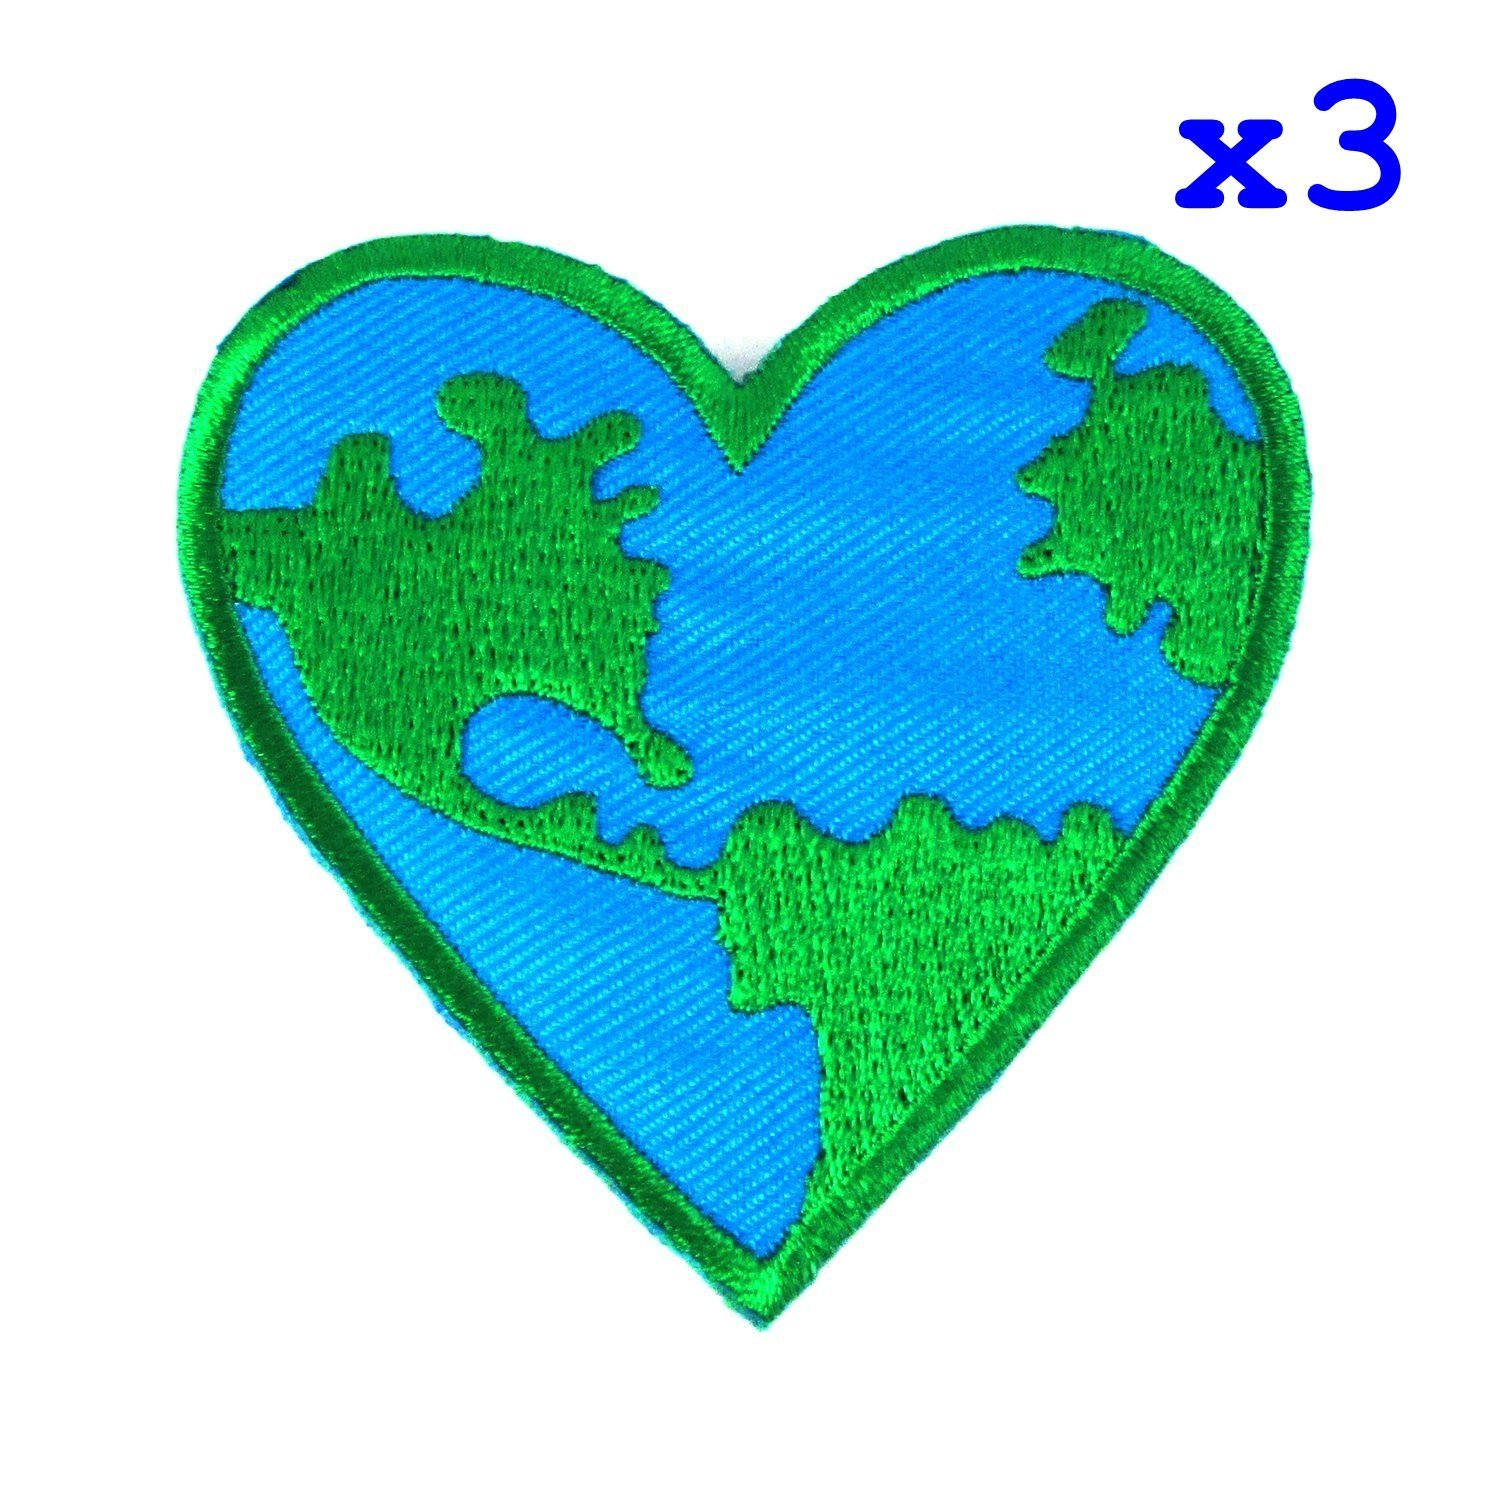 "Pack of 3 Love Earth, Heart Logo Iron on Patches, Pack of 3 Patch Size : 2 1/2"" x 2 3/4"" By DIYmonk Patch"